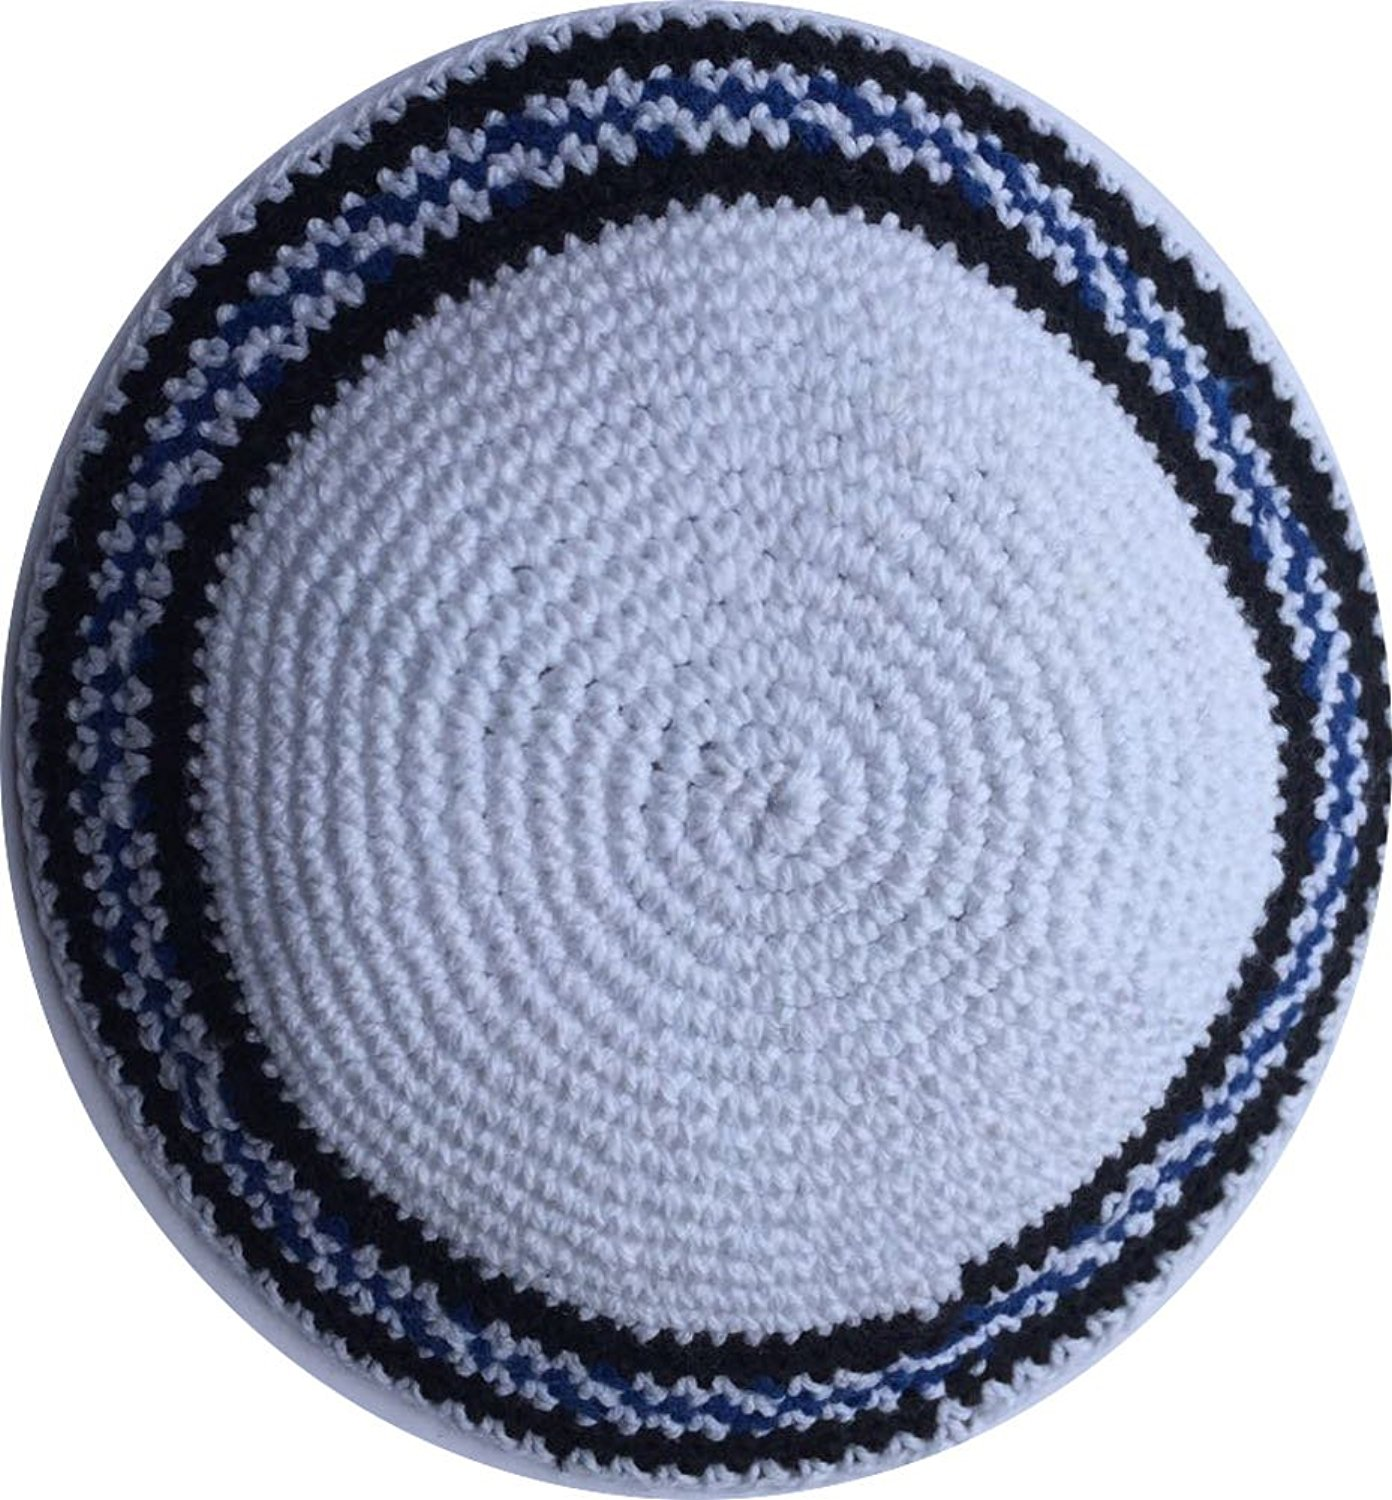 White / Black and Royal Blue lines 17cm DMC 100% Knitted Cotton Kippah Jewish